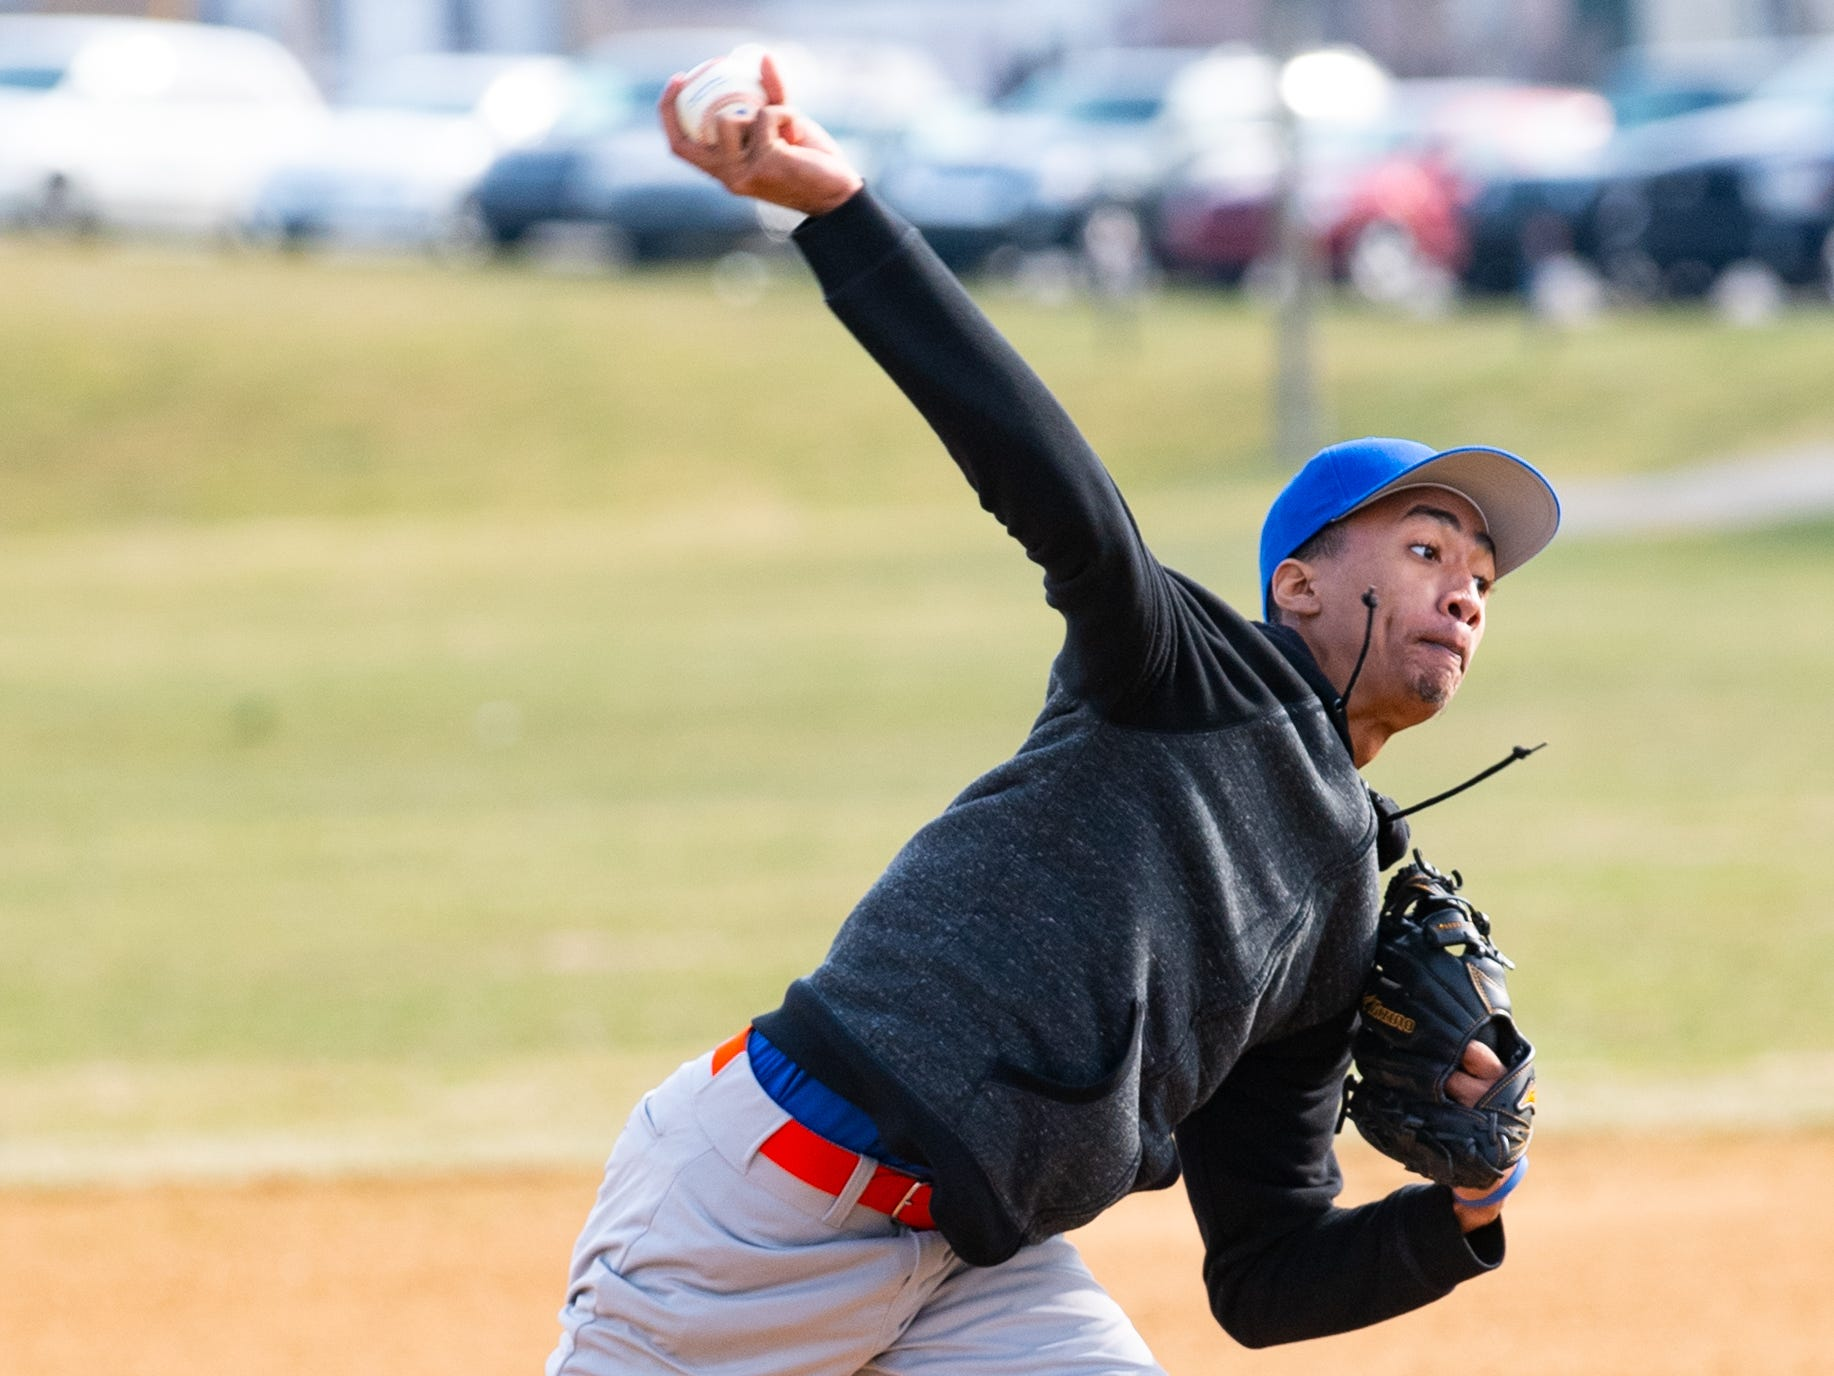 Rafael (10) puts power behind the pitch during York High's scrimmage against Steel High, March 20, 2019 at Small Athletic Field.